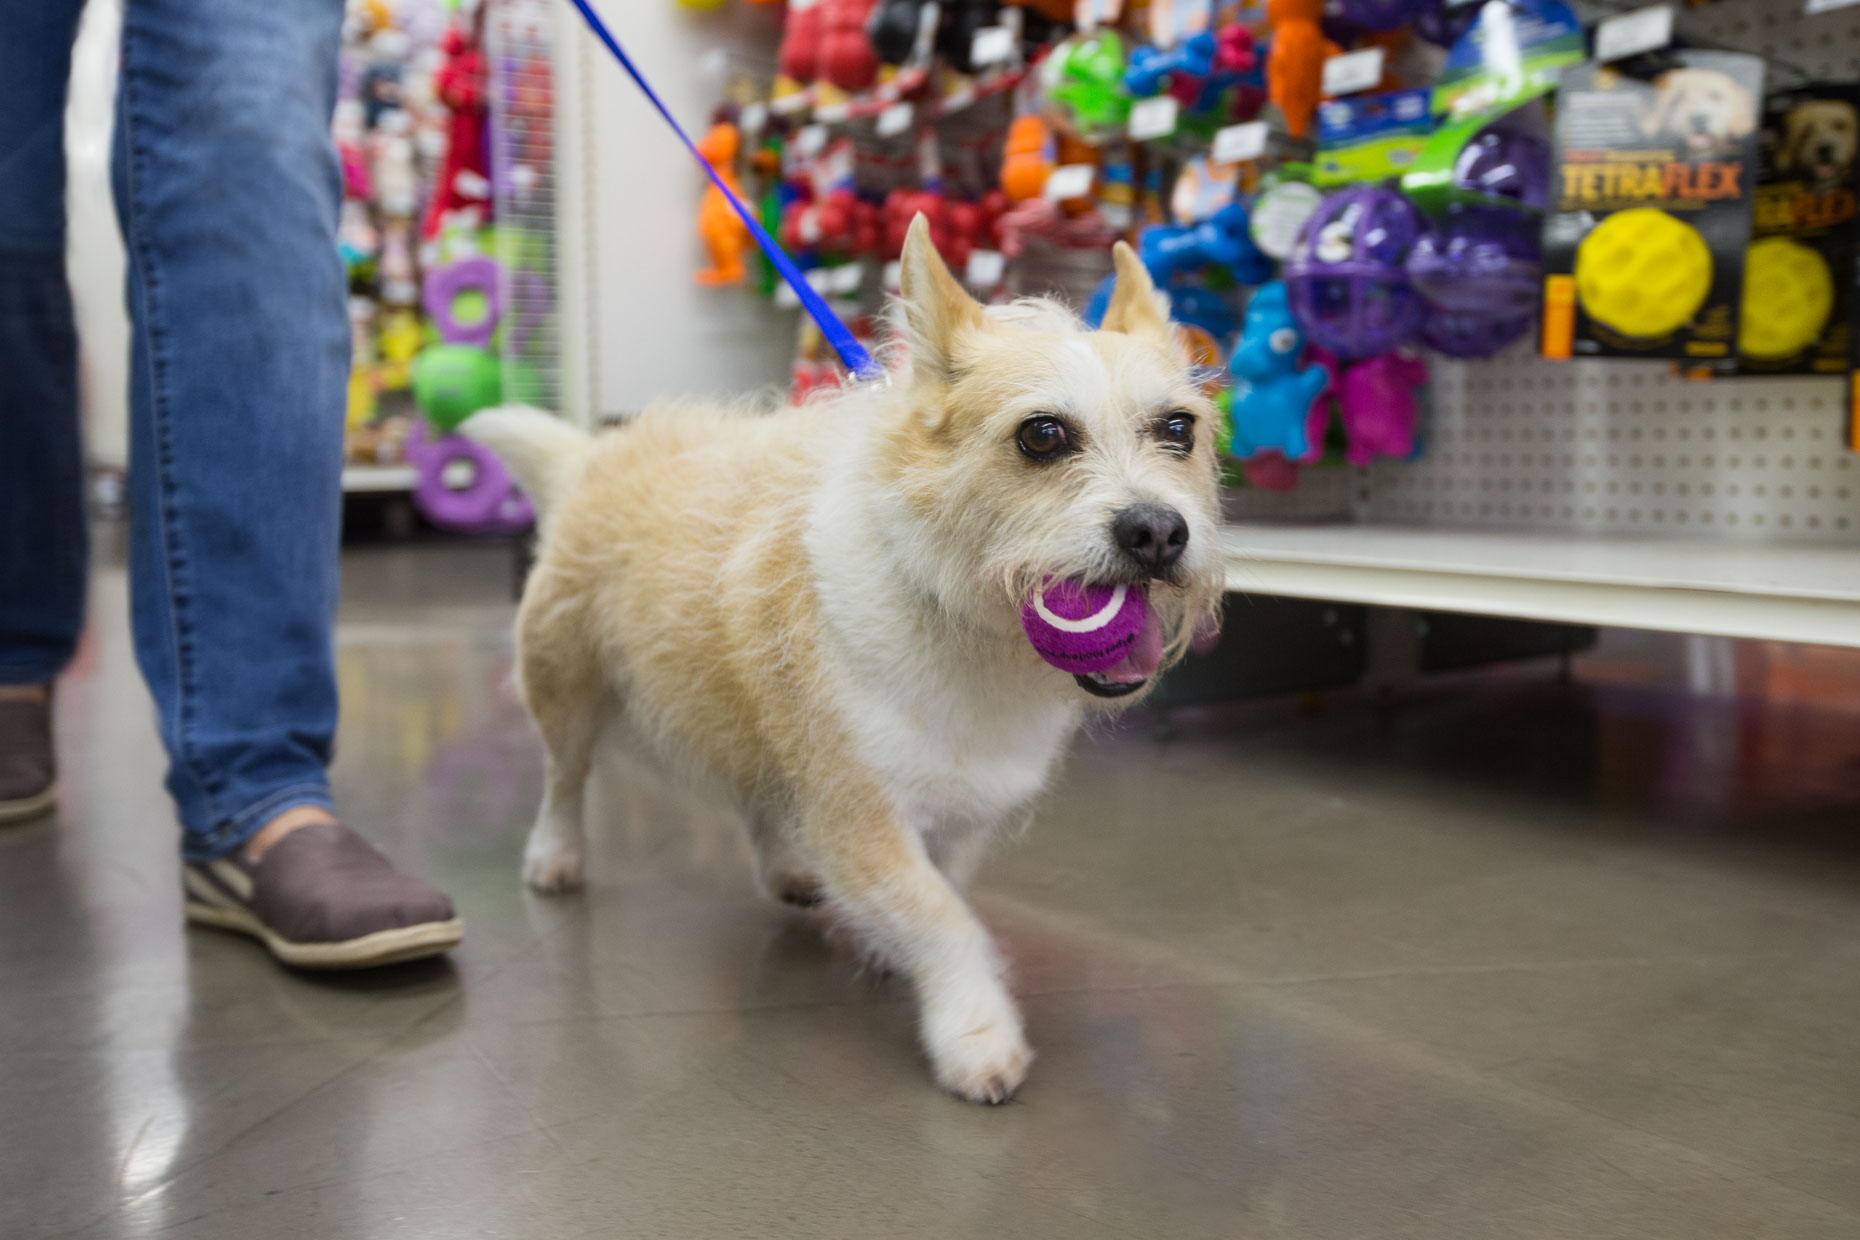 Pet Lifestyle Photography | Dog Shopping with Ball by Mark Rogers